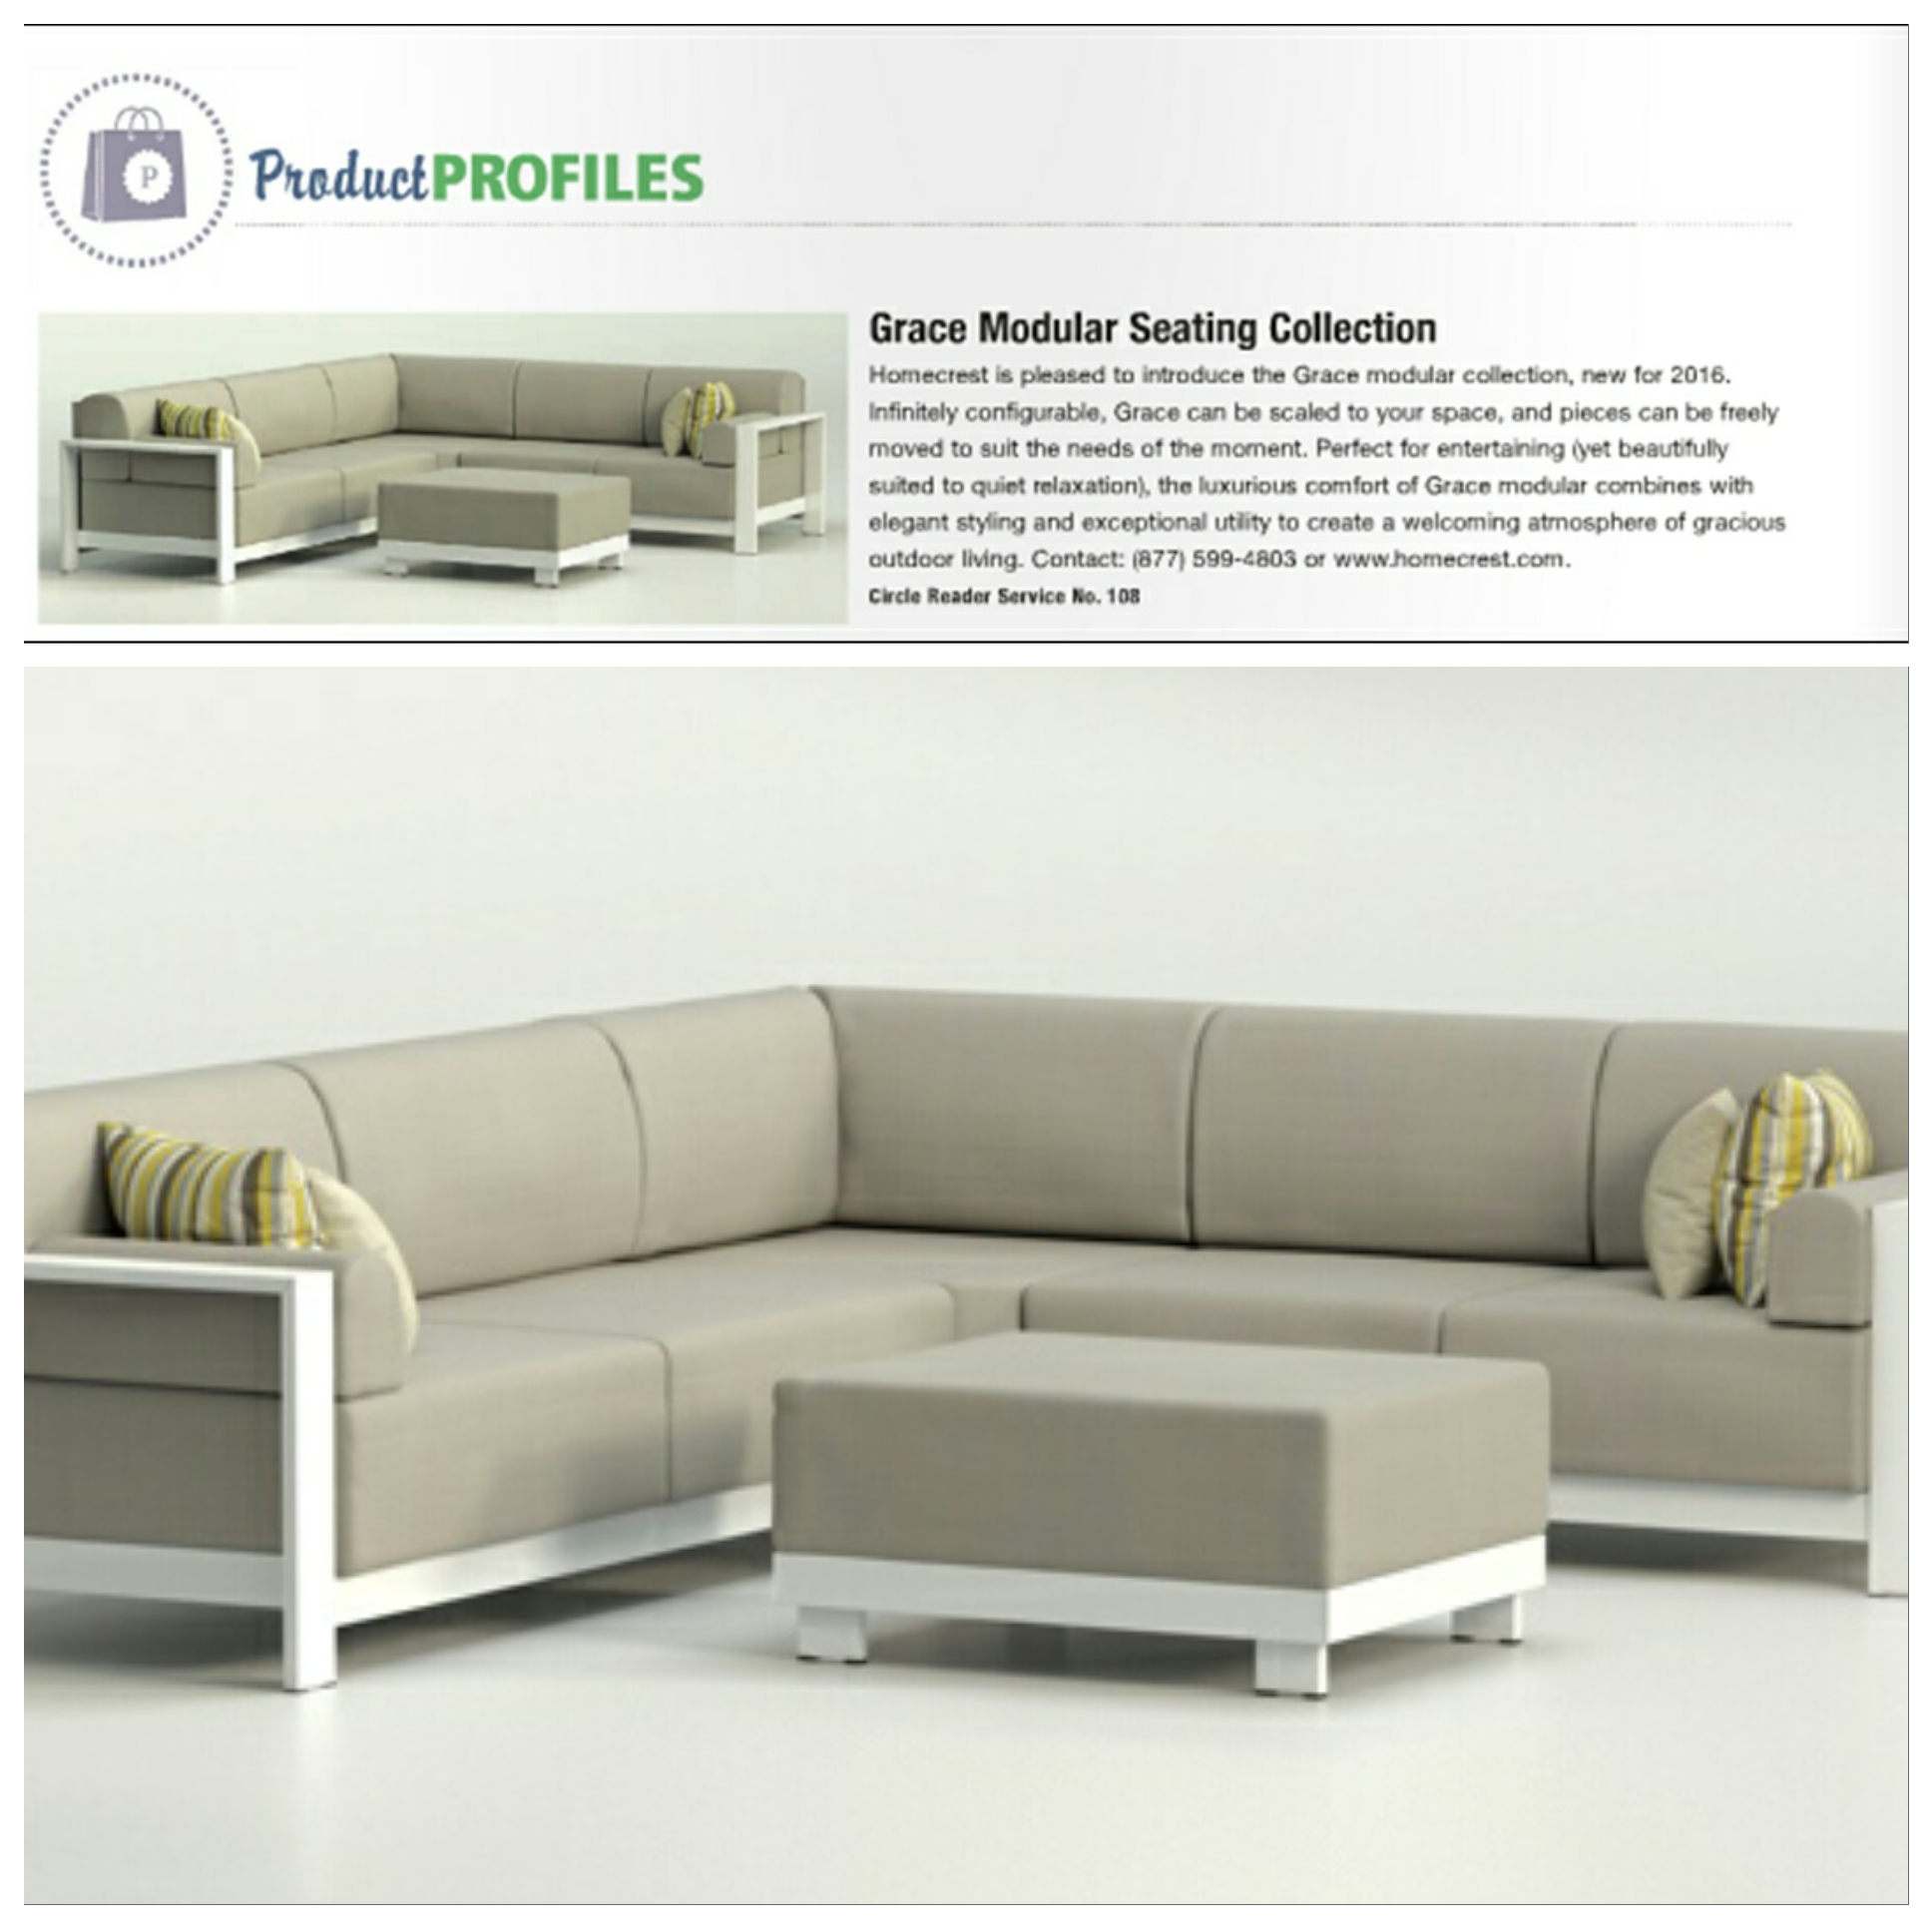 Several Homecrest products are featured in the July issue of Patio ...